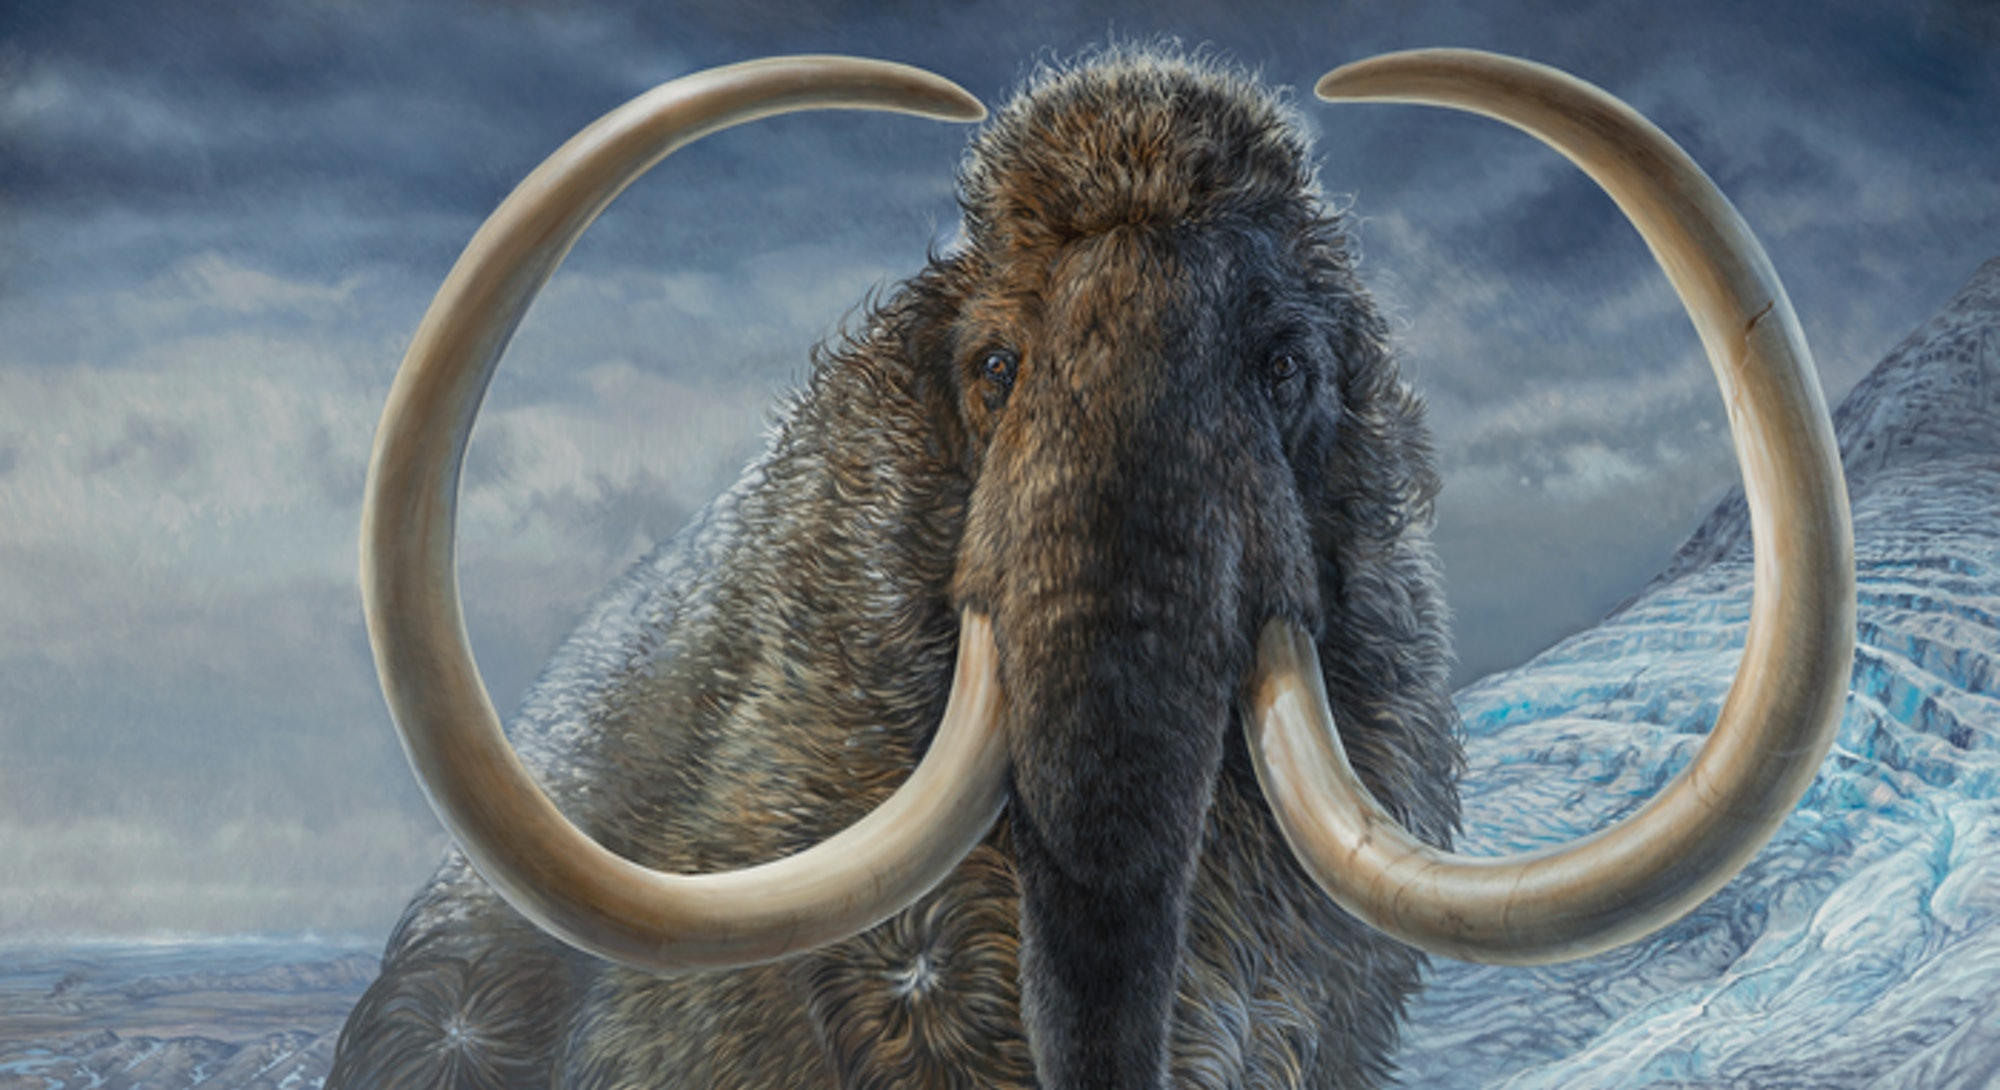 A painting of a woolly mammoth